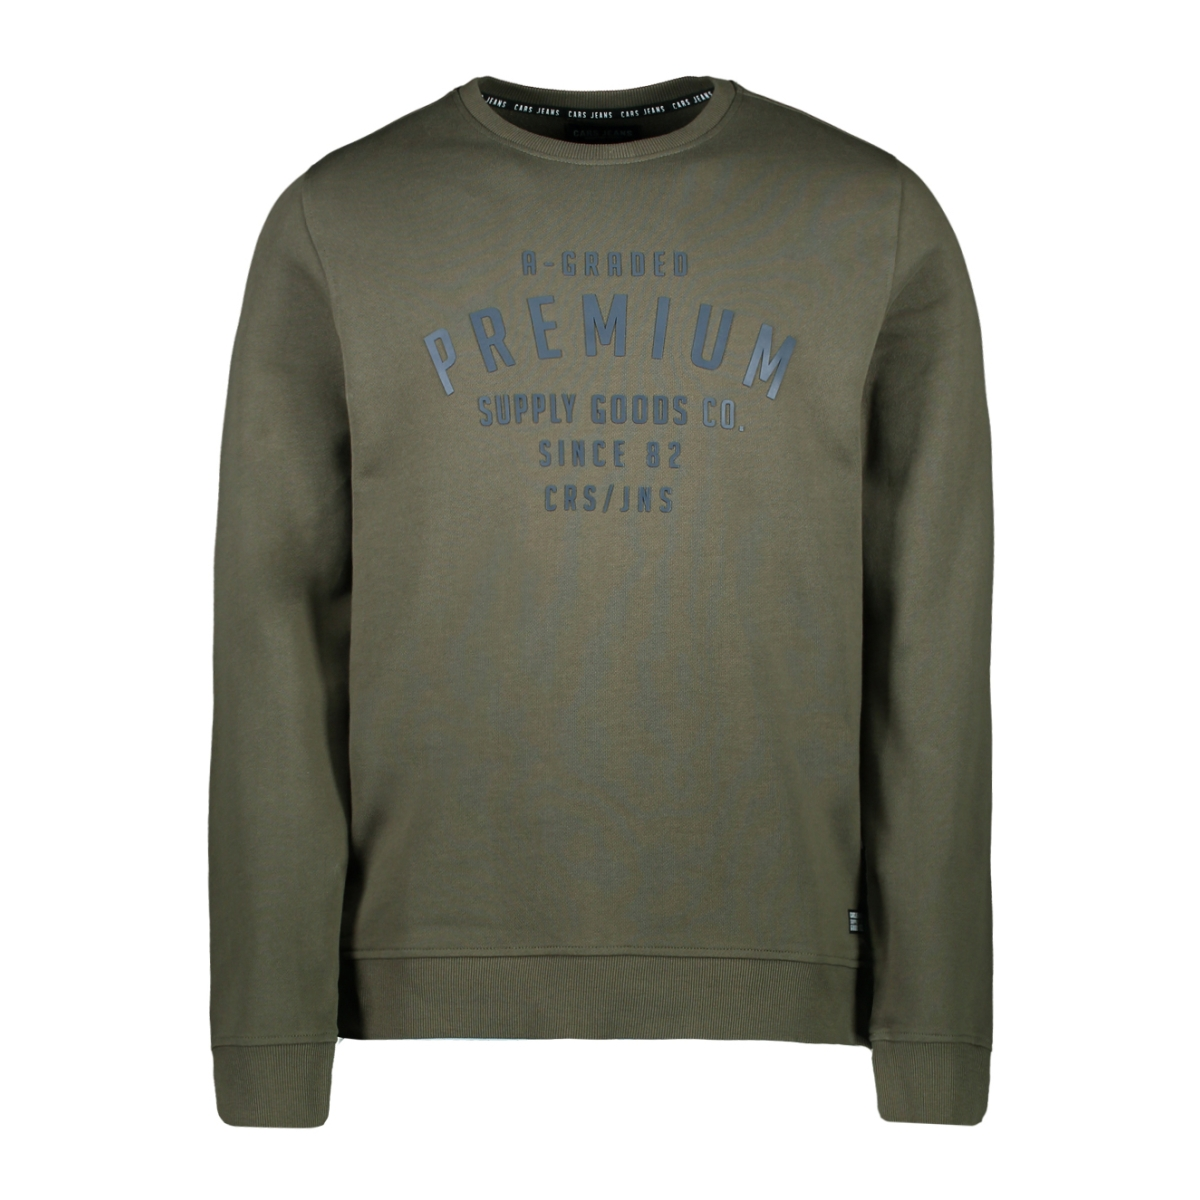 herald sw 4331019 cars sweater army